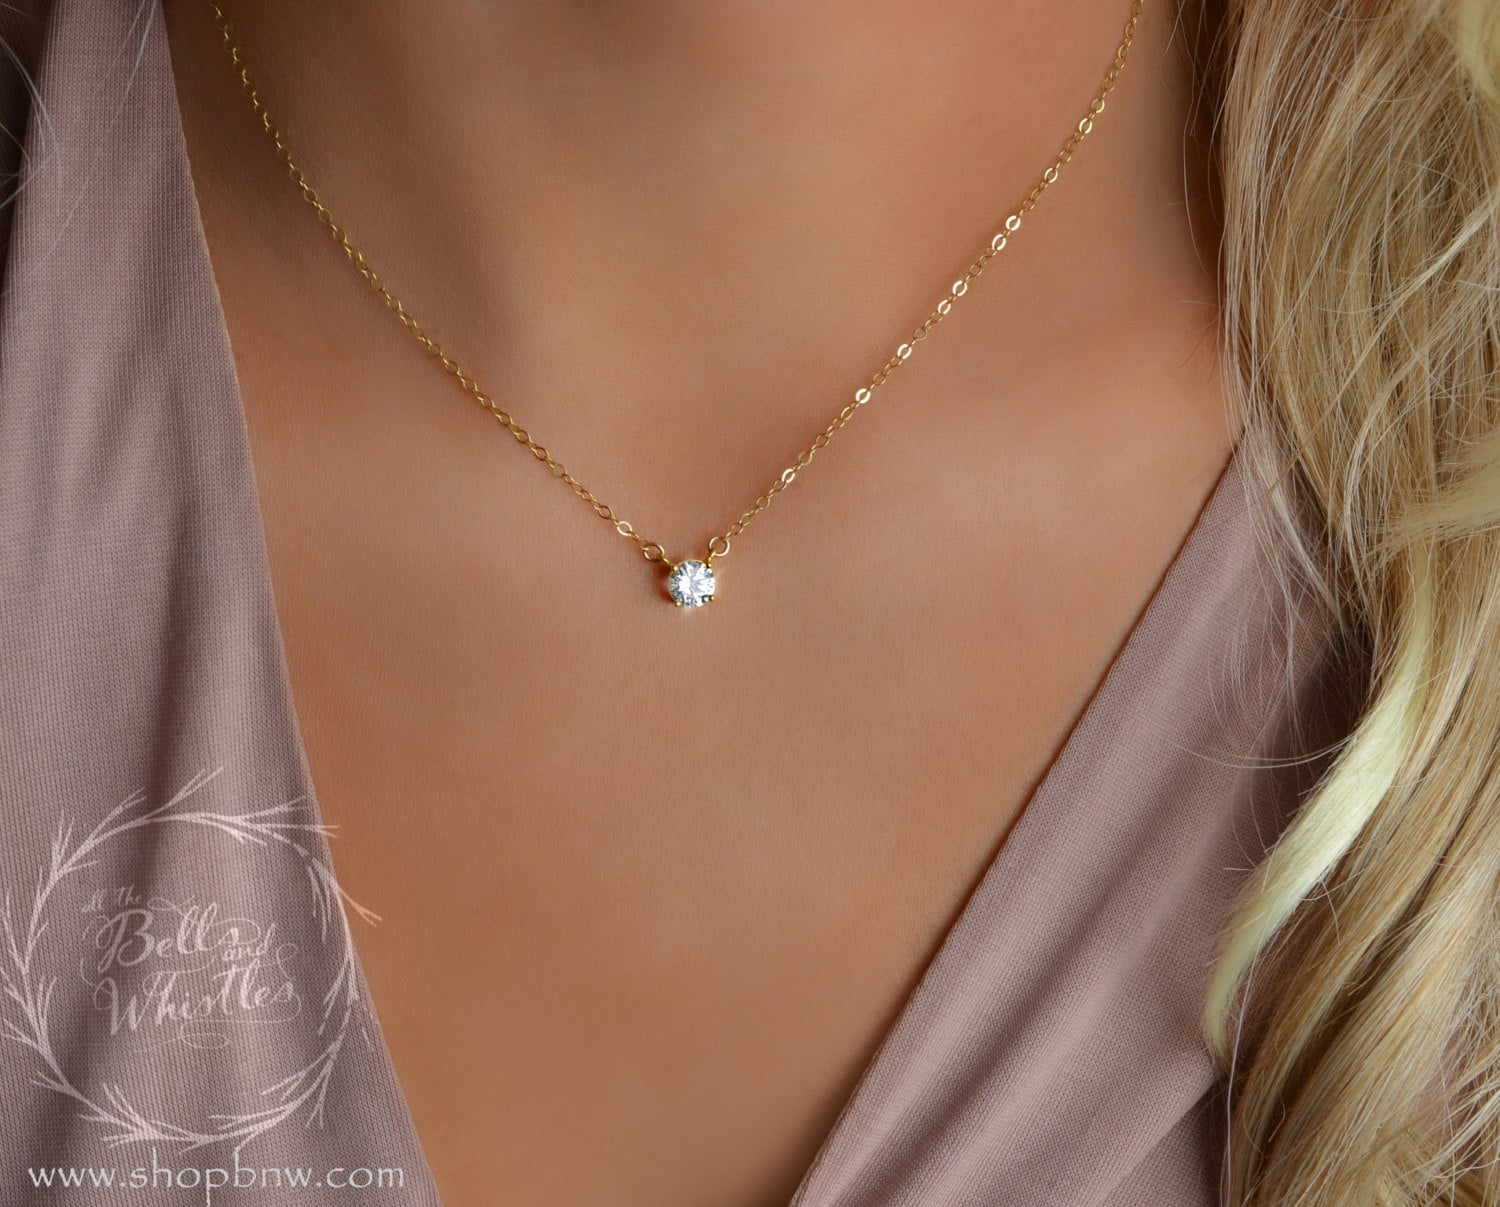 glamour necklace solitaire christine glow suspended and jewelry elizabeth minimalist solitare products